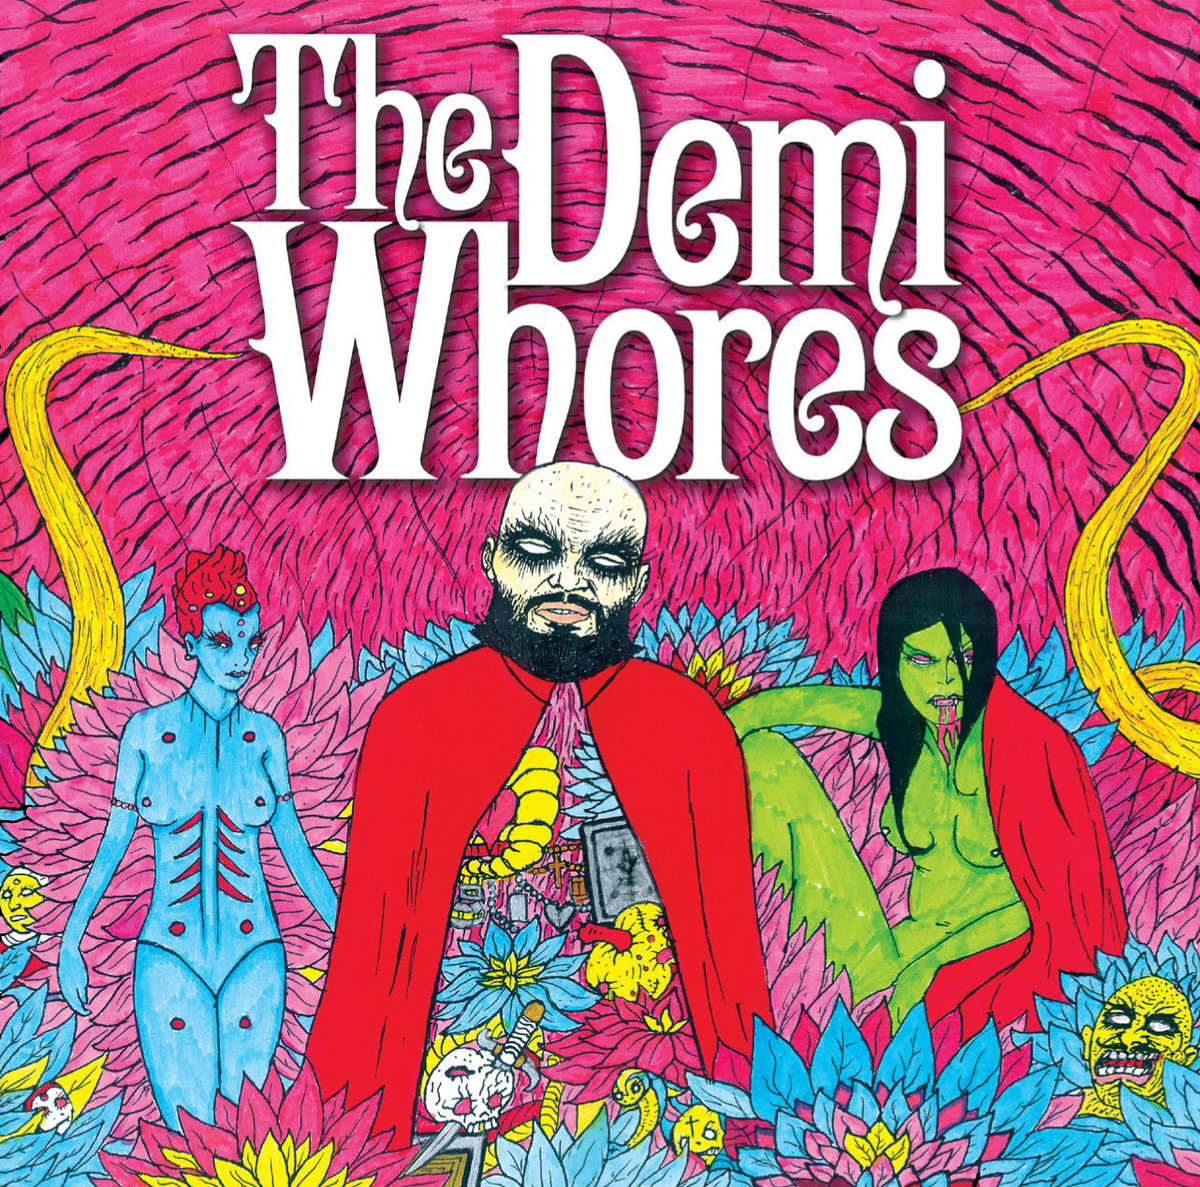 by The Demi Whores